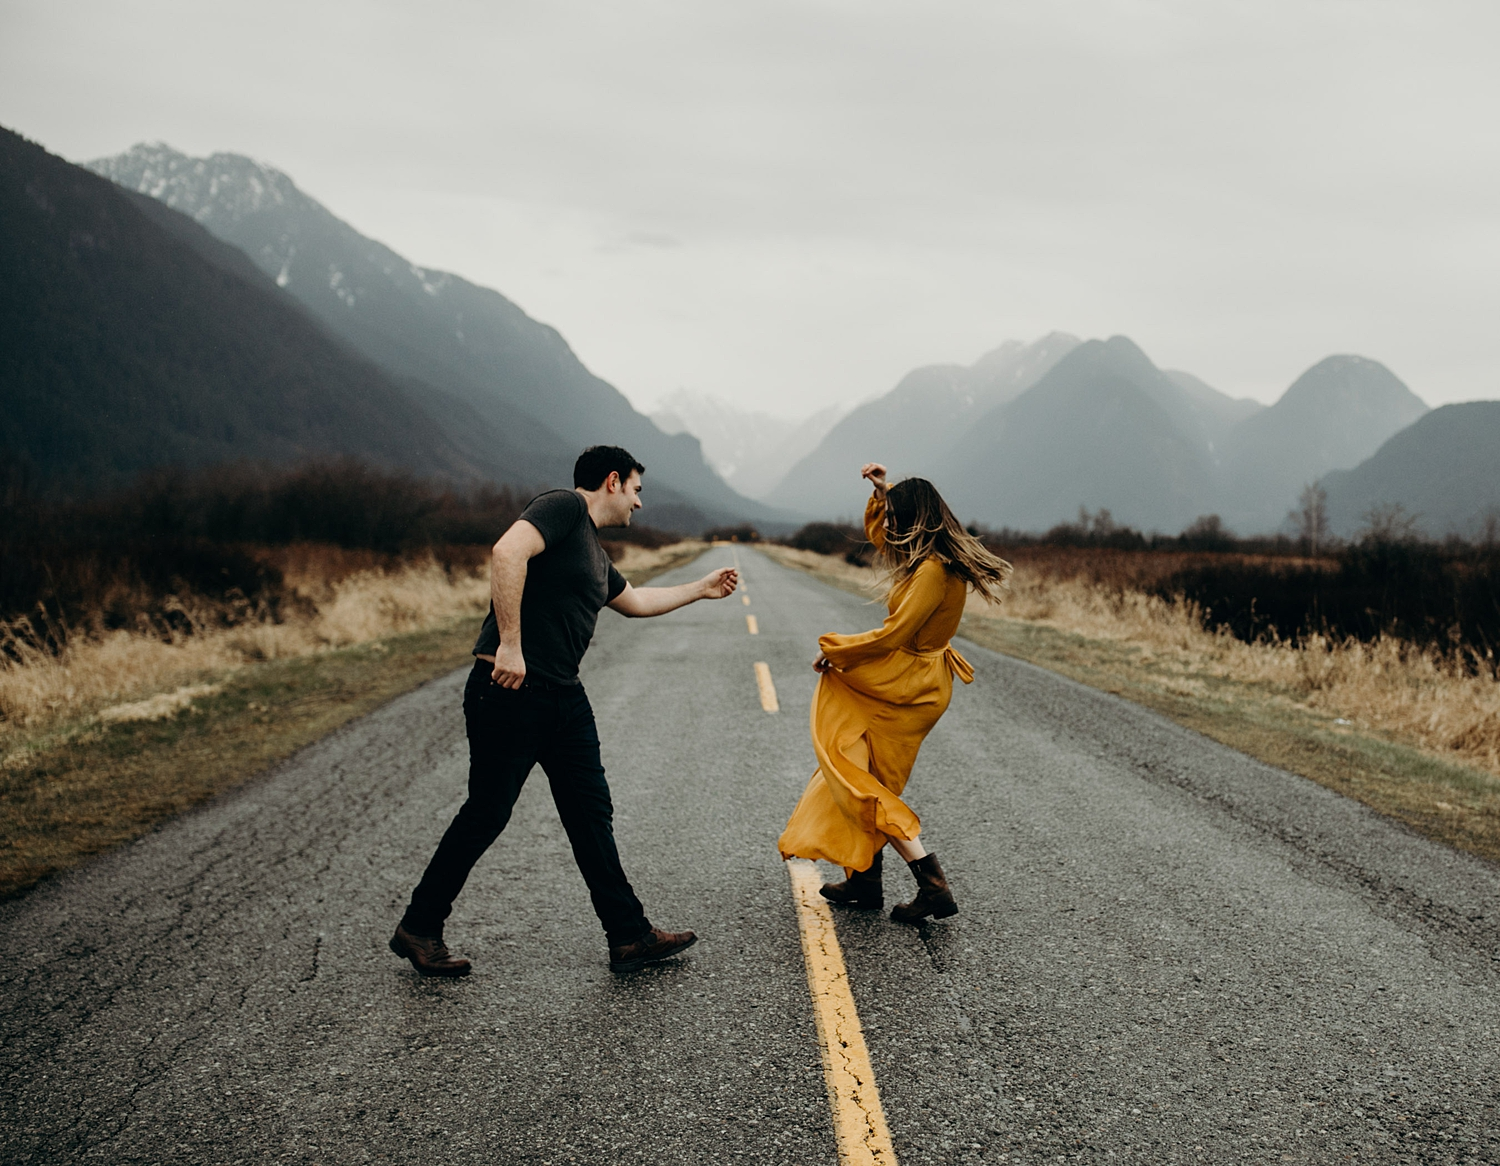 The McLachlans - Vancouver Wedding Photographers - Pitt Lake Engagements - Dan and Alleigra_0019.jpg